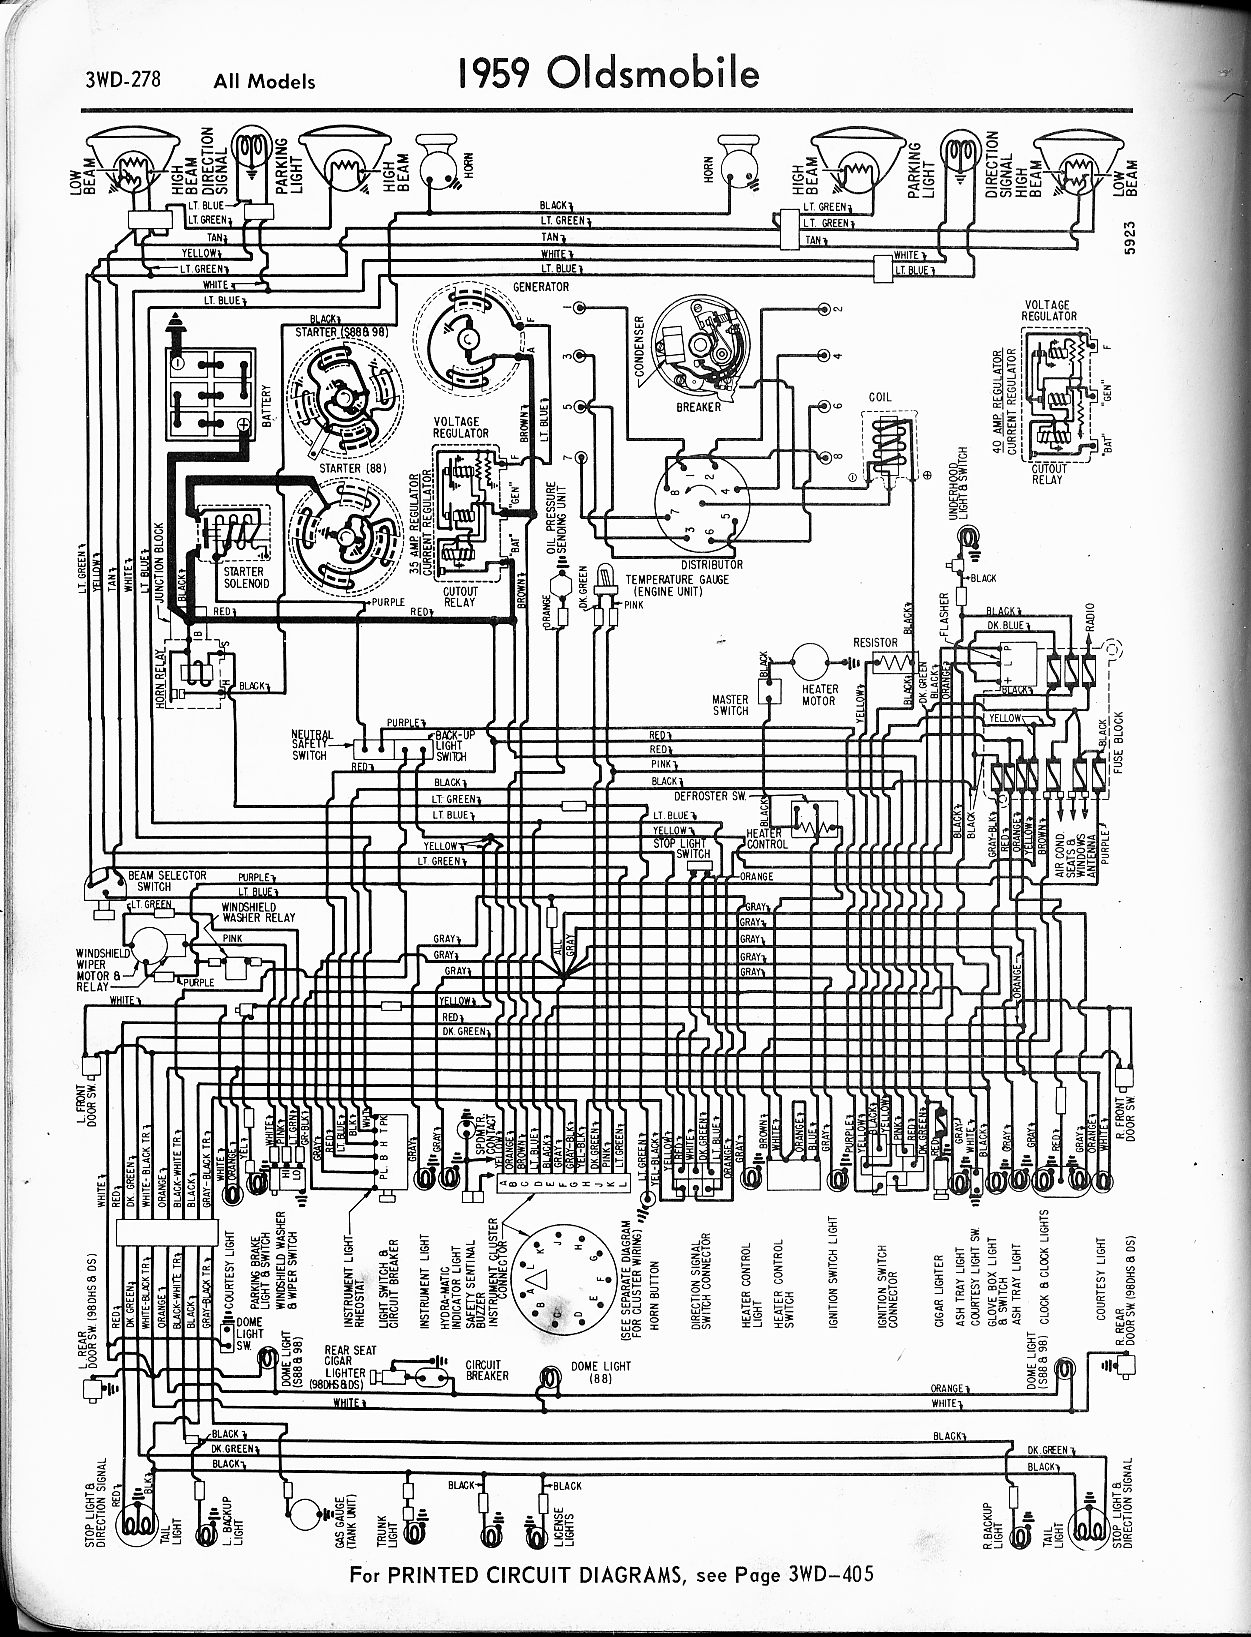 MWire5765 278 oldsmobile wiring diagrams the old car manual project Basic Turn Signal Wiring Diagram at n-0.co